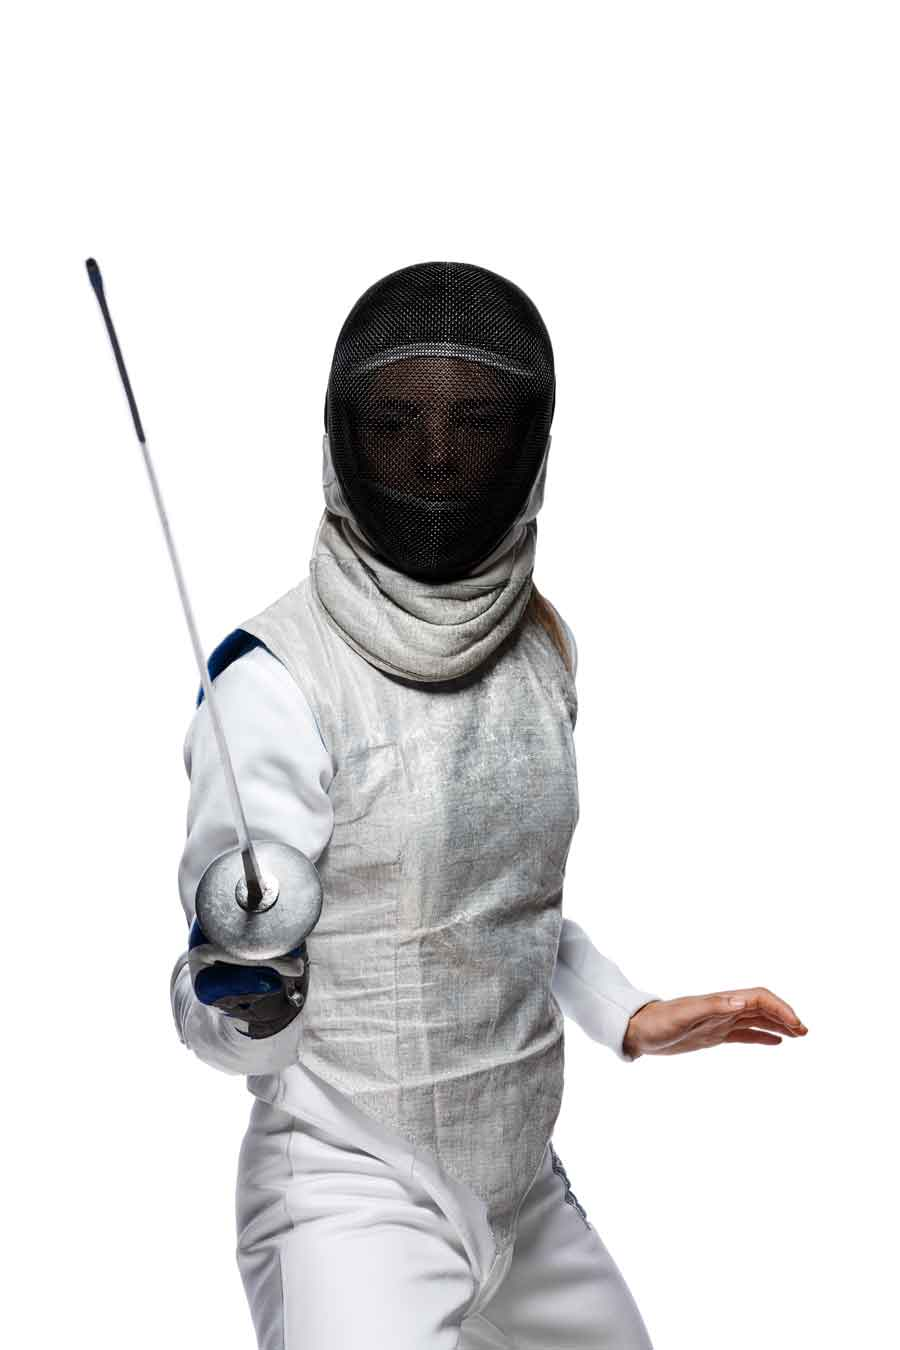 The physiological and biomechanical demands of fencing